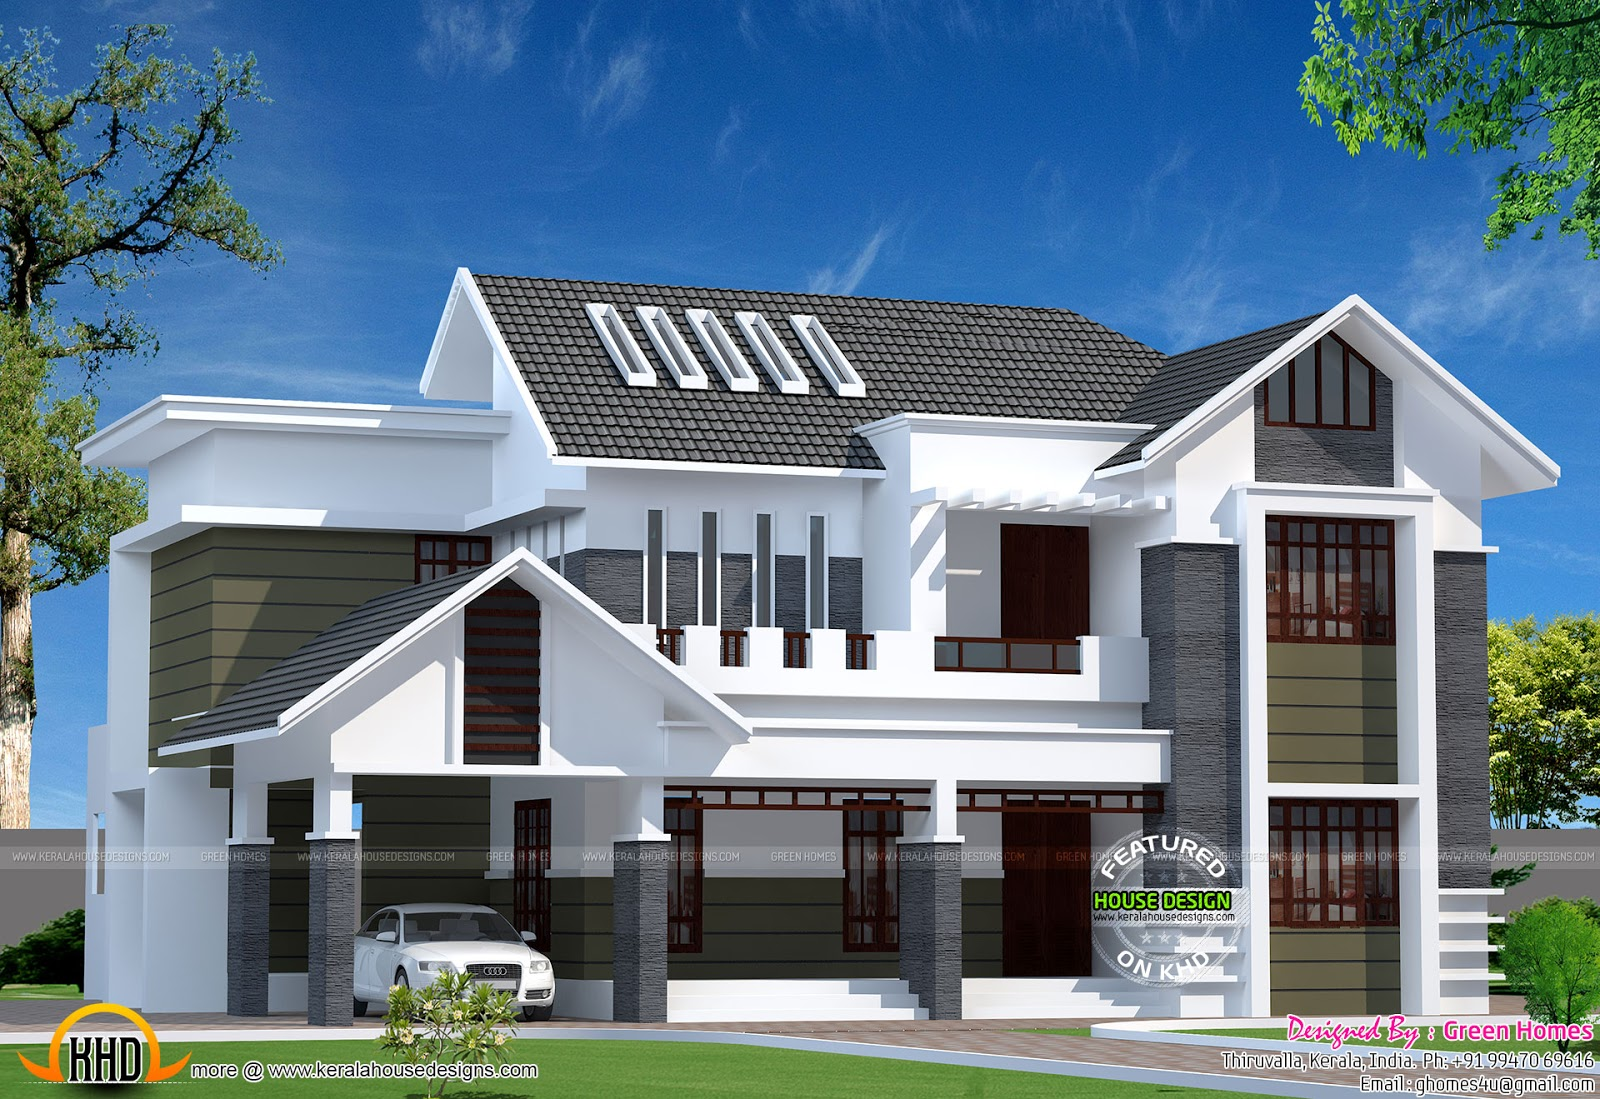 Home in kerala for Kerala modern house designs